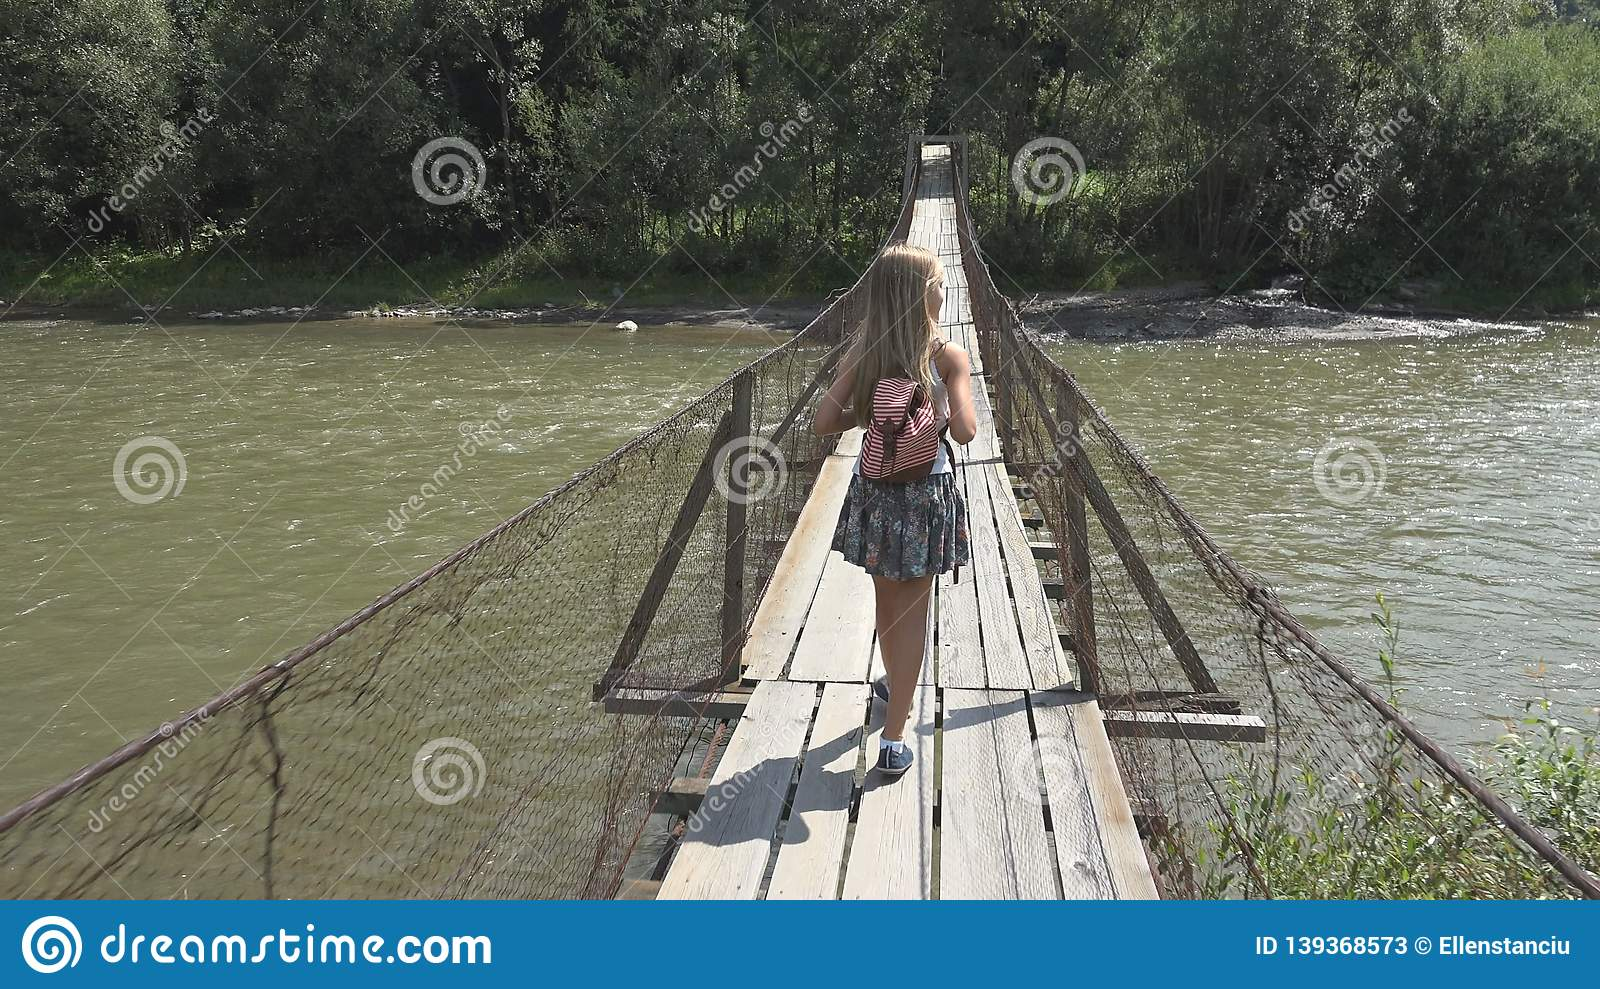 Child on Bridge in Mountains, Kid Hiking in Nature, Girl Looking a River, Stream